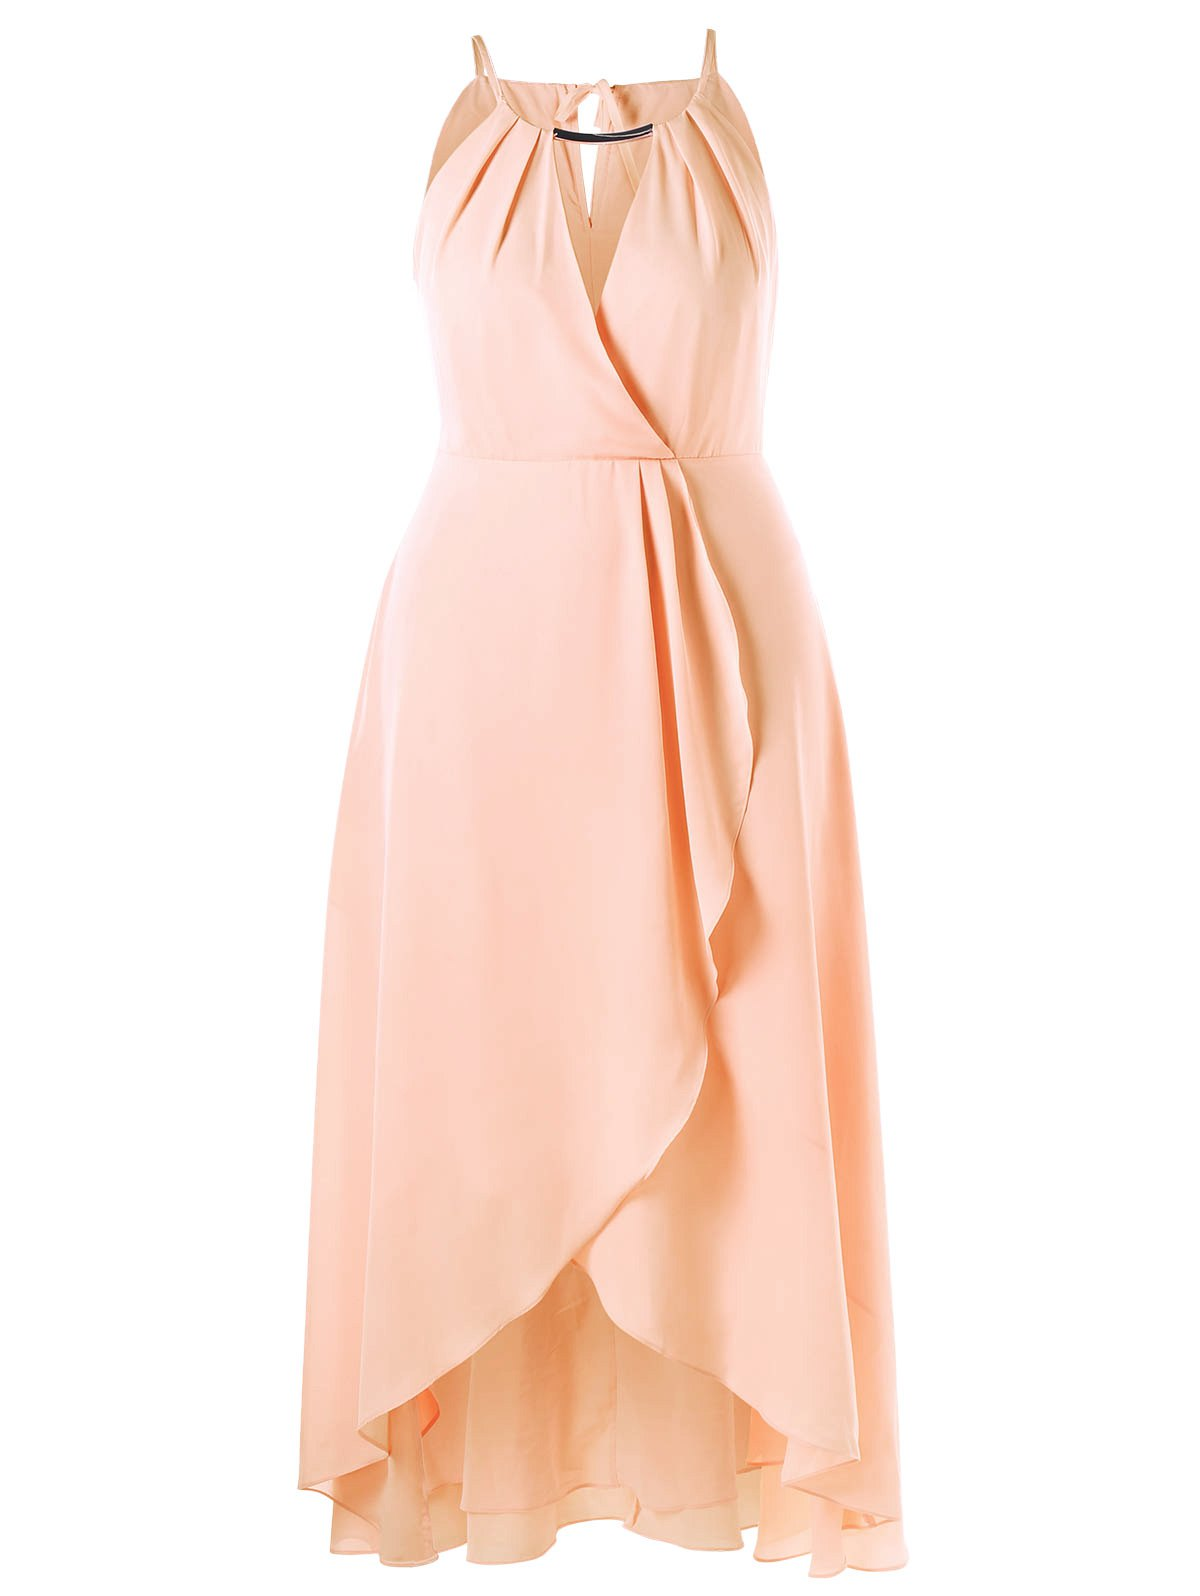 Plus Size Cut Out Overlap Flowy DressWOMEN<br><br>Size: XL; Color: PINKBEIGE; Style: Brief; Material: Polyester; Silhouette: A-Line; Dresses Length: Ankle-Length; Neckline: Spaghetti Strap; Sleeve Length: Sleeveless; Pattern Type: Solid Color; With Belt: No; Season: Summer; Weight: 0.5800kg; Package Contents: 1 x Dress;